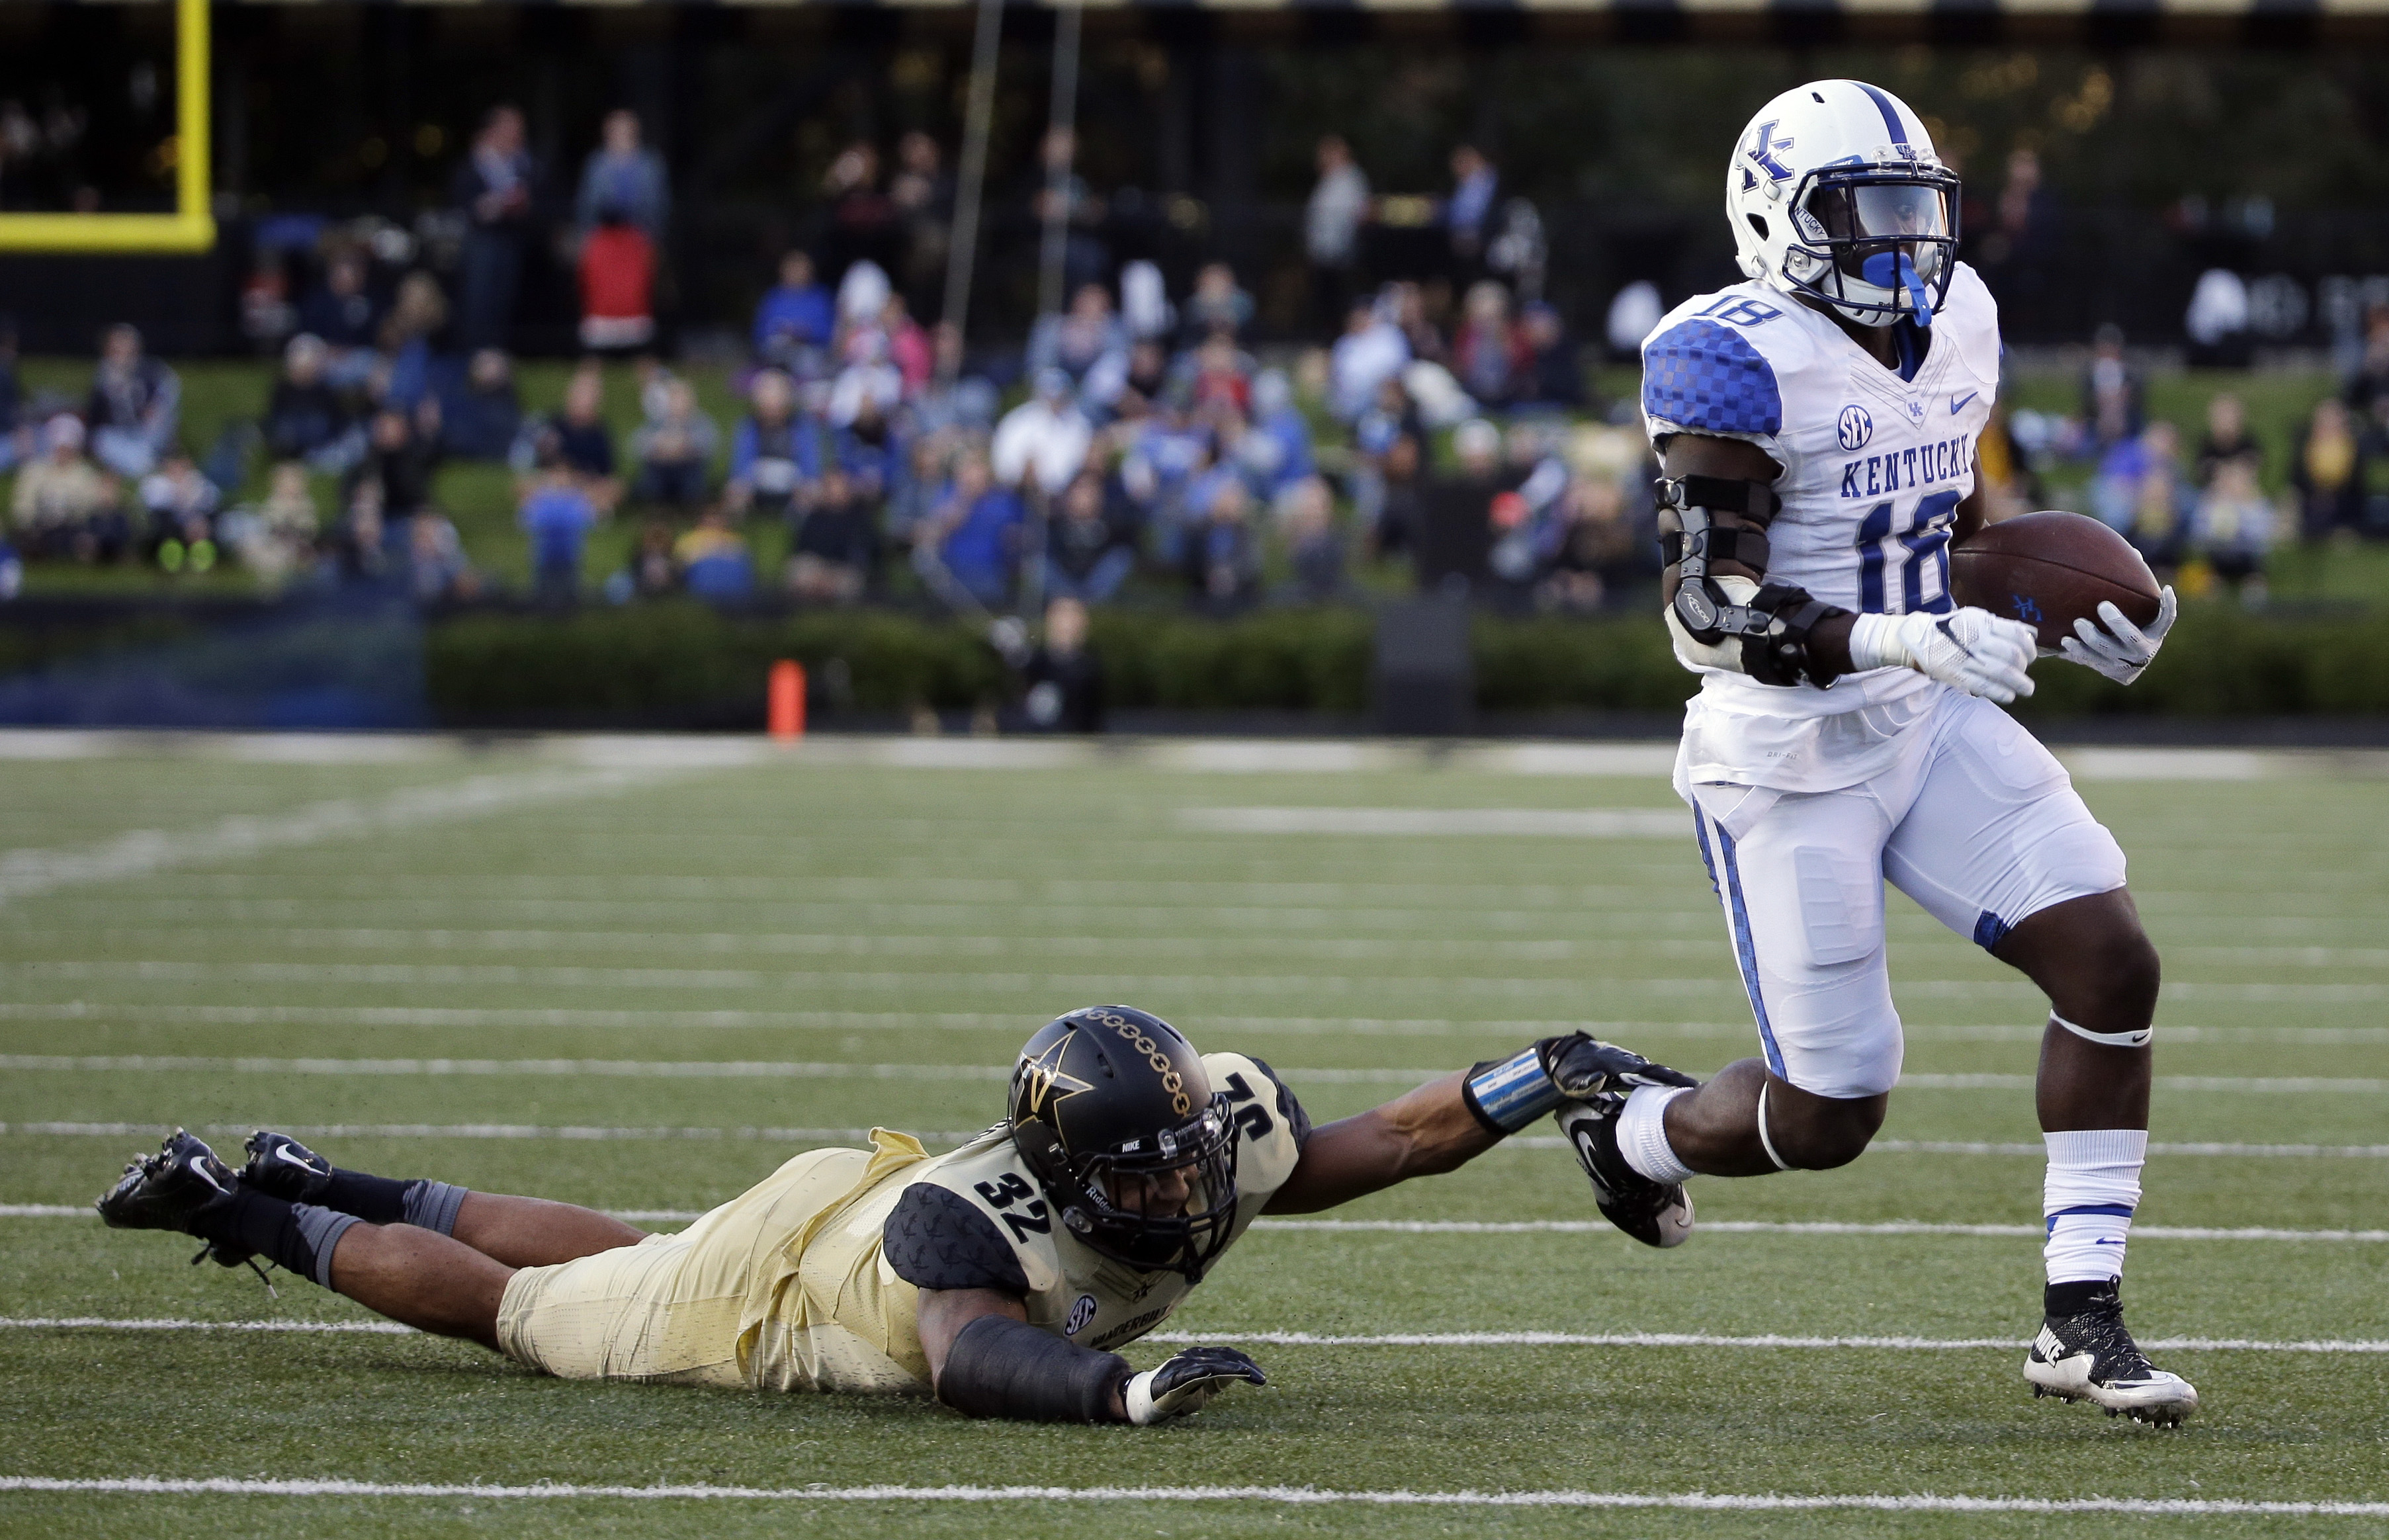 Vanderbilt safety Andrew Williamson (32) makes a one-handed tackle against Kentucky running back Stanley Williams (18) in the first half of an NCAA college football game Saturday, Nov. 14, 2015, in Nashville, Tenn. (AP Photo/Mark Humphrey)